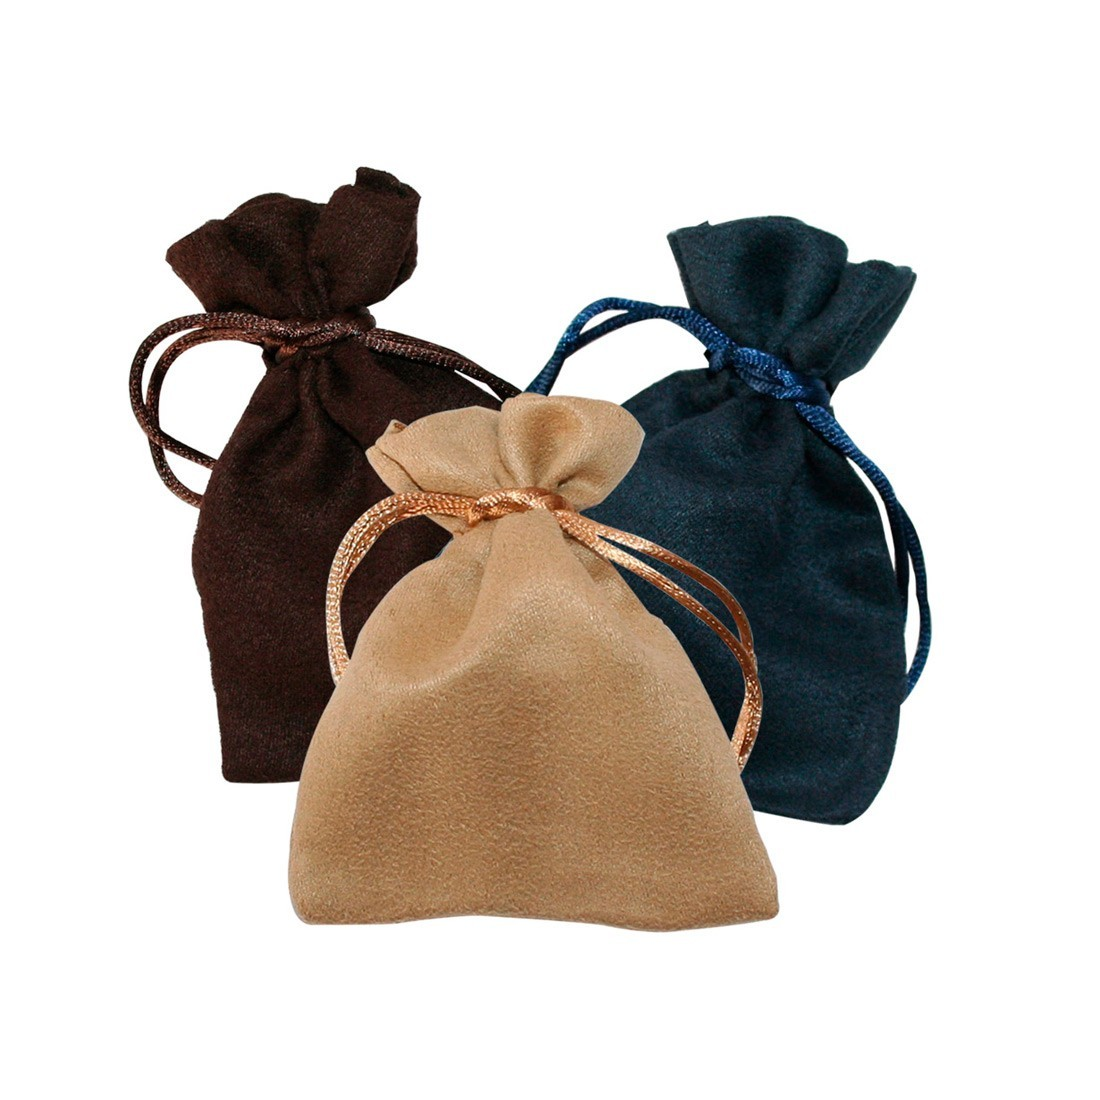 Suede pouch for jewels and custom jewelry